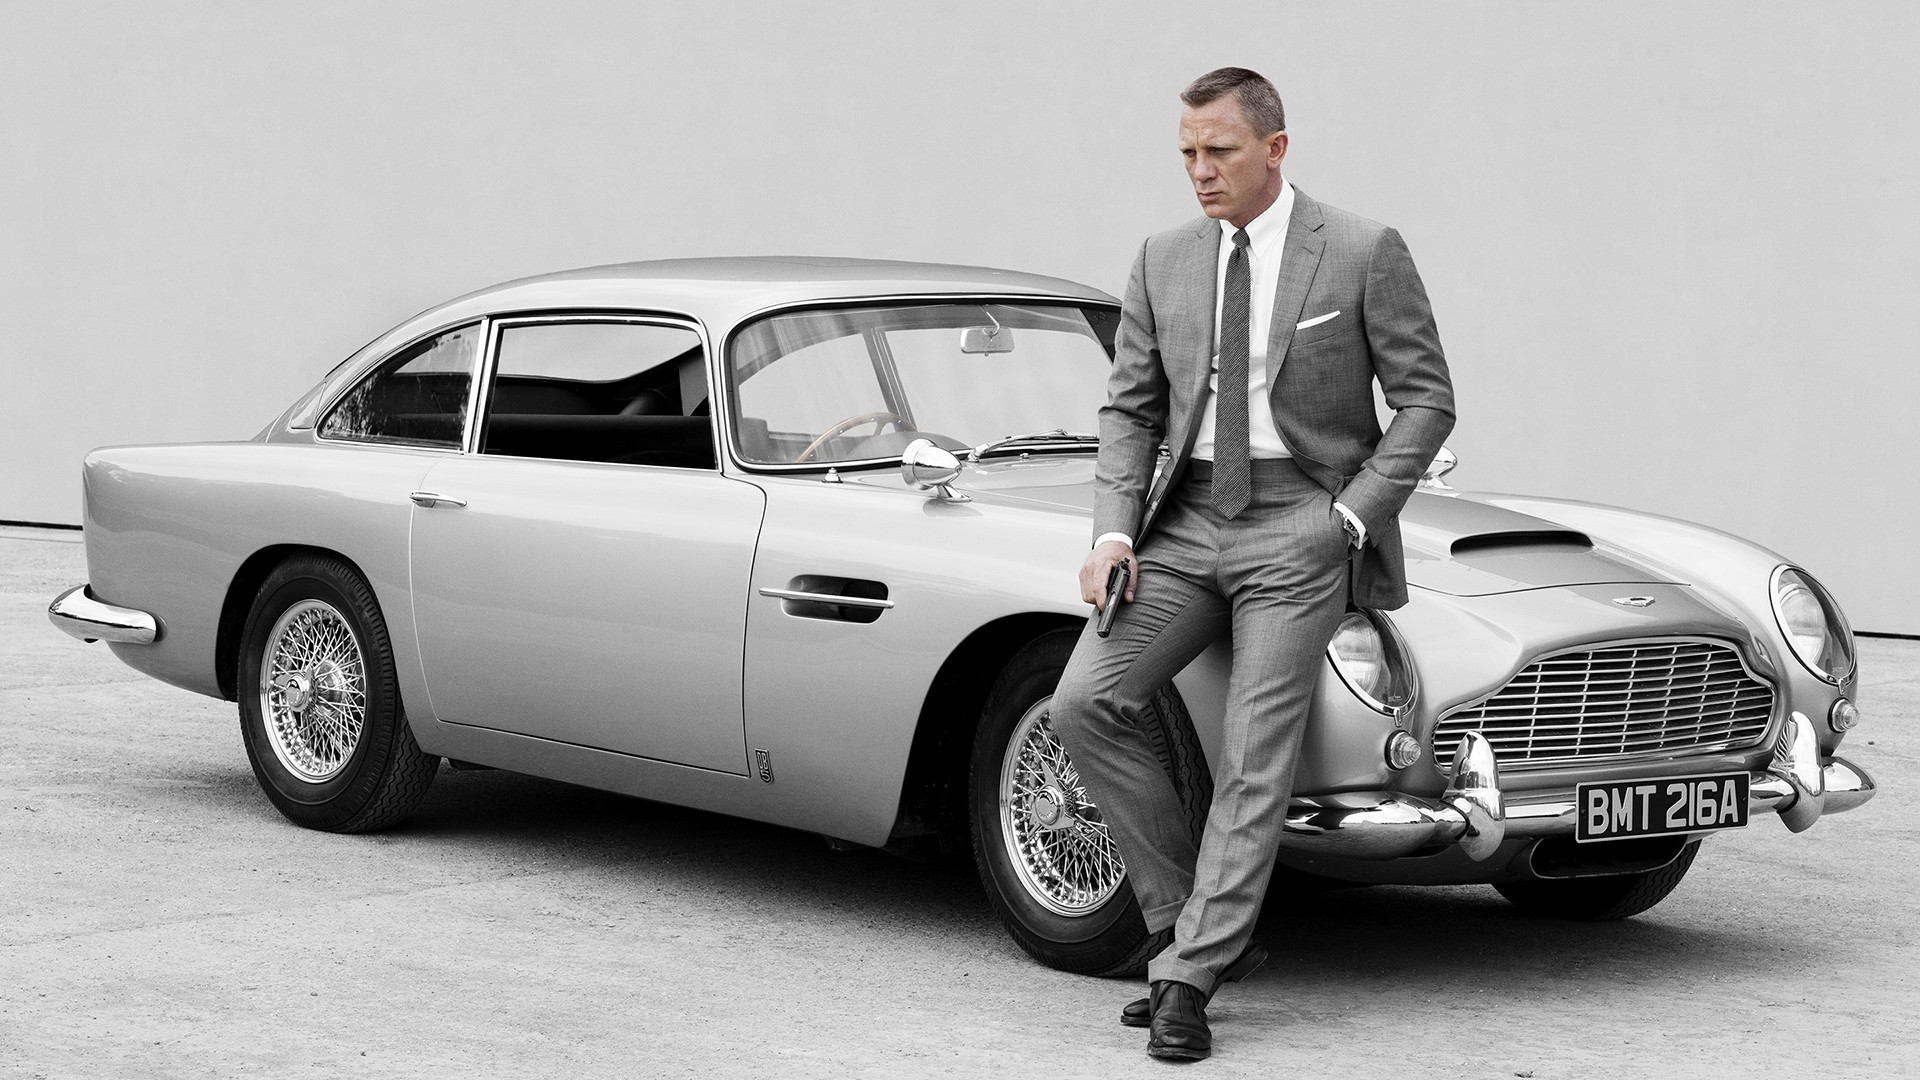 Communication on this topic: 10 Cool James Bond Cars That Defined , 10-cool-james-bond-cars-that-defined/